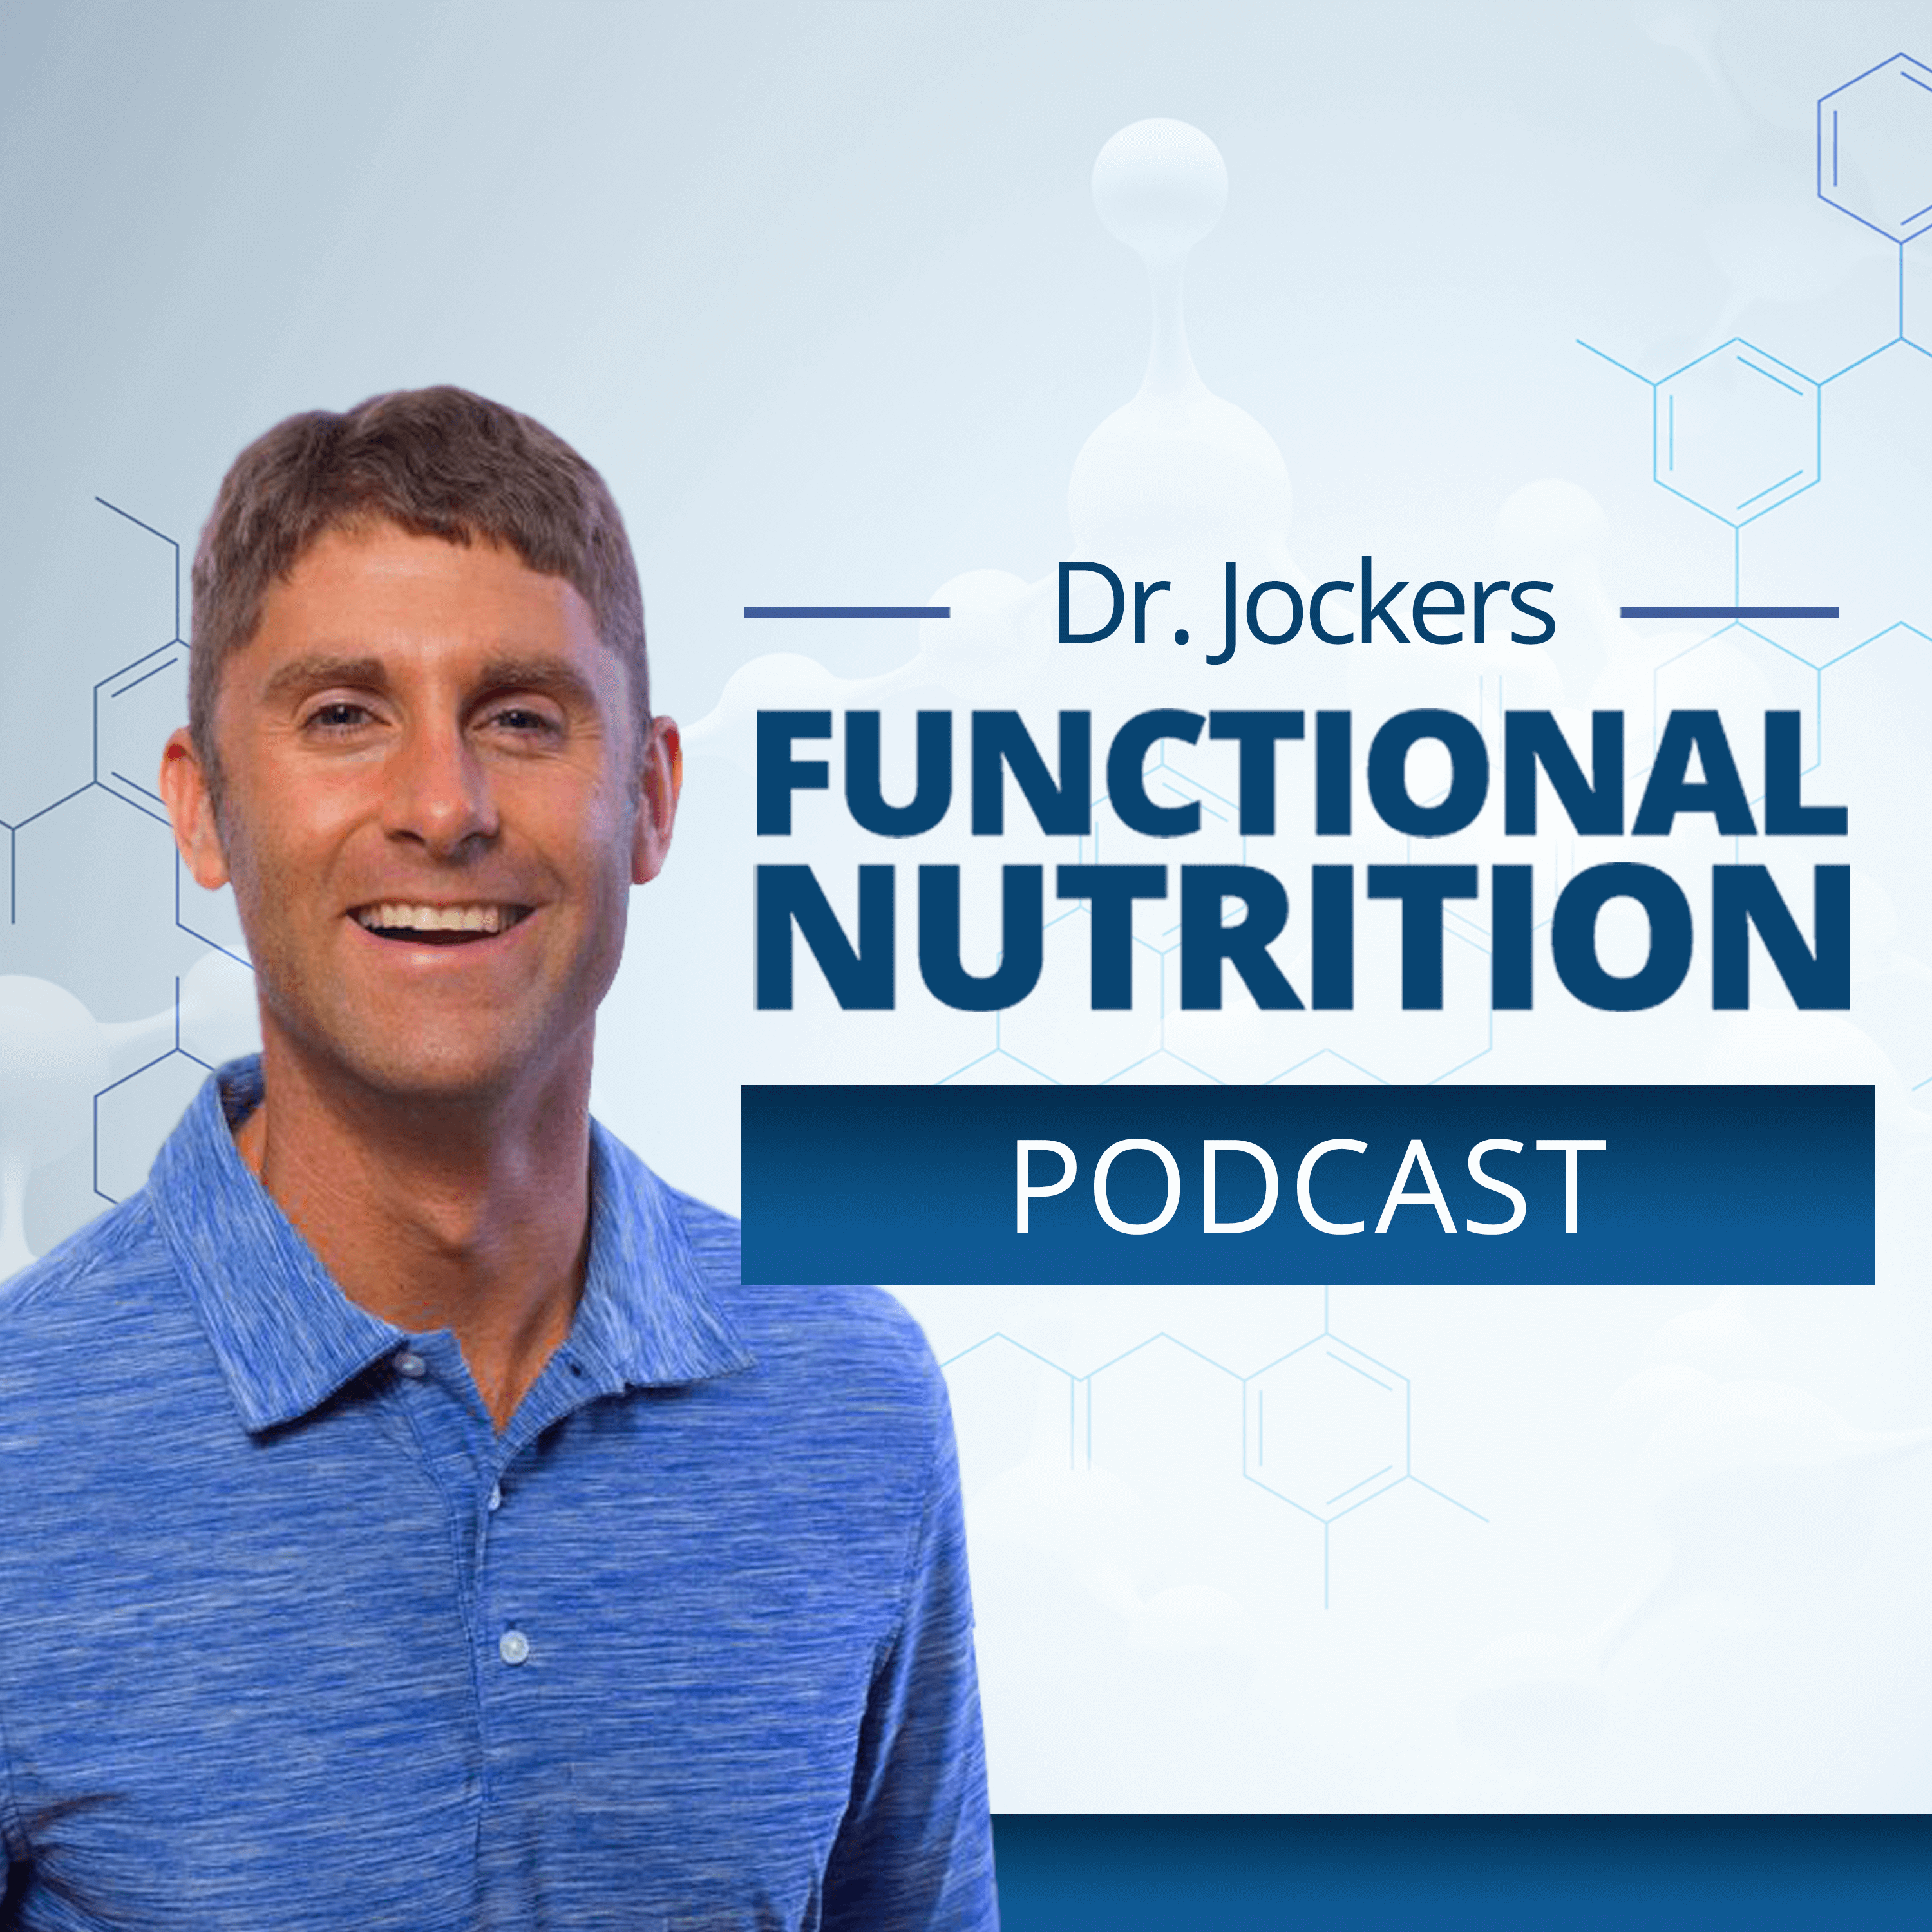 A highlight from Joint Inflammation: Causes and Natural Support Strategies